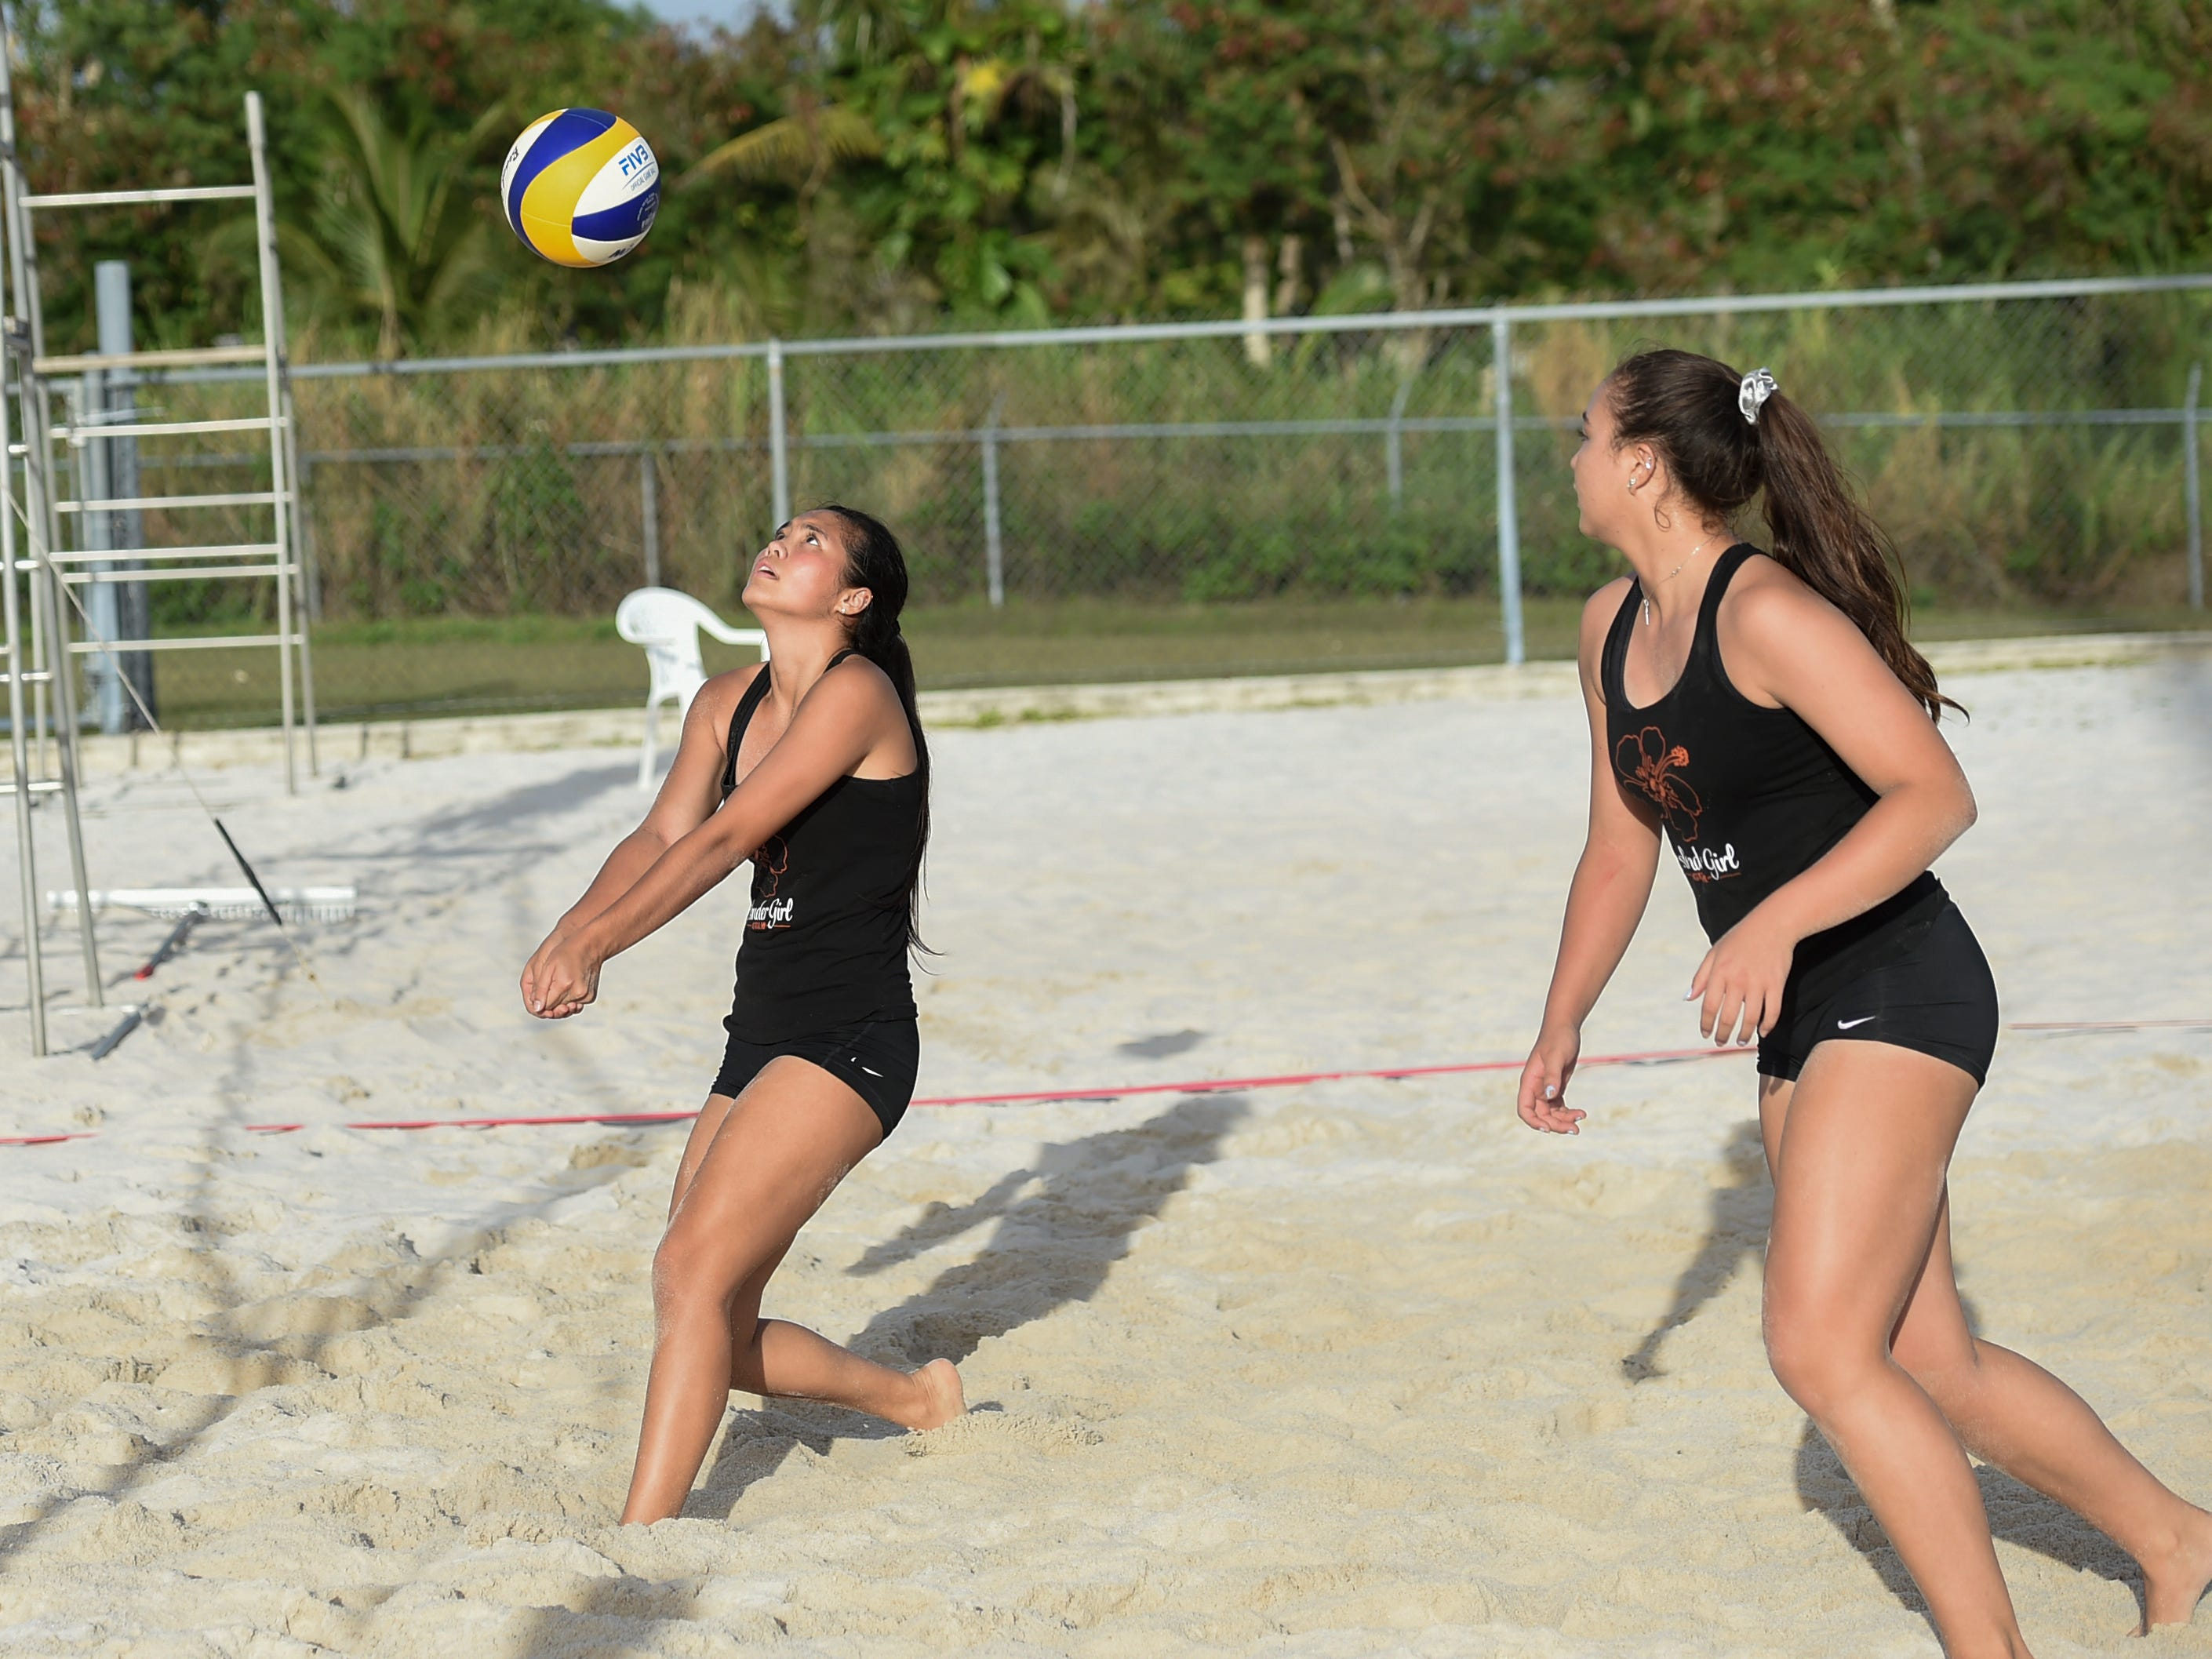 The St. John's duo of Hallie Wigsten, left, and Tylee Shepherd compete during the IIAAG Beach Volleyball championship game at the Guam Football Association National Training Center in Dededo, March 12, 2019.